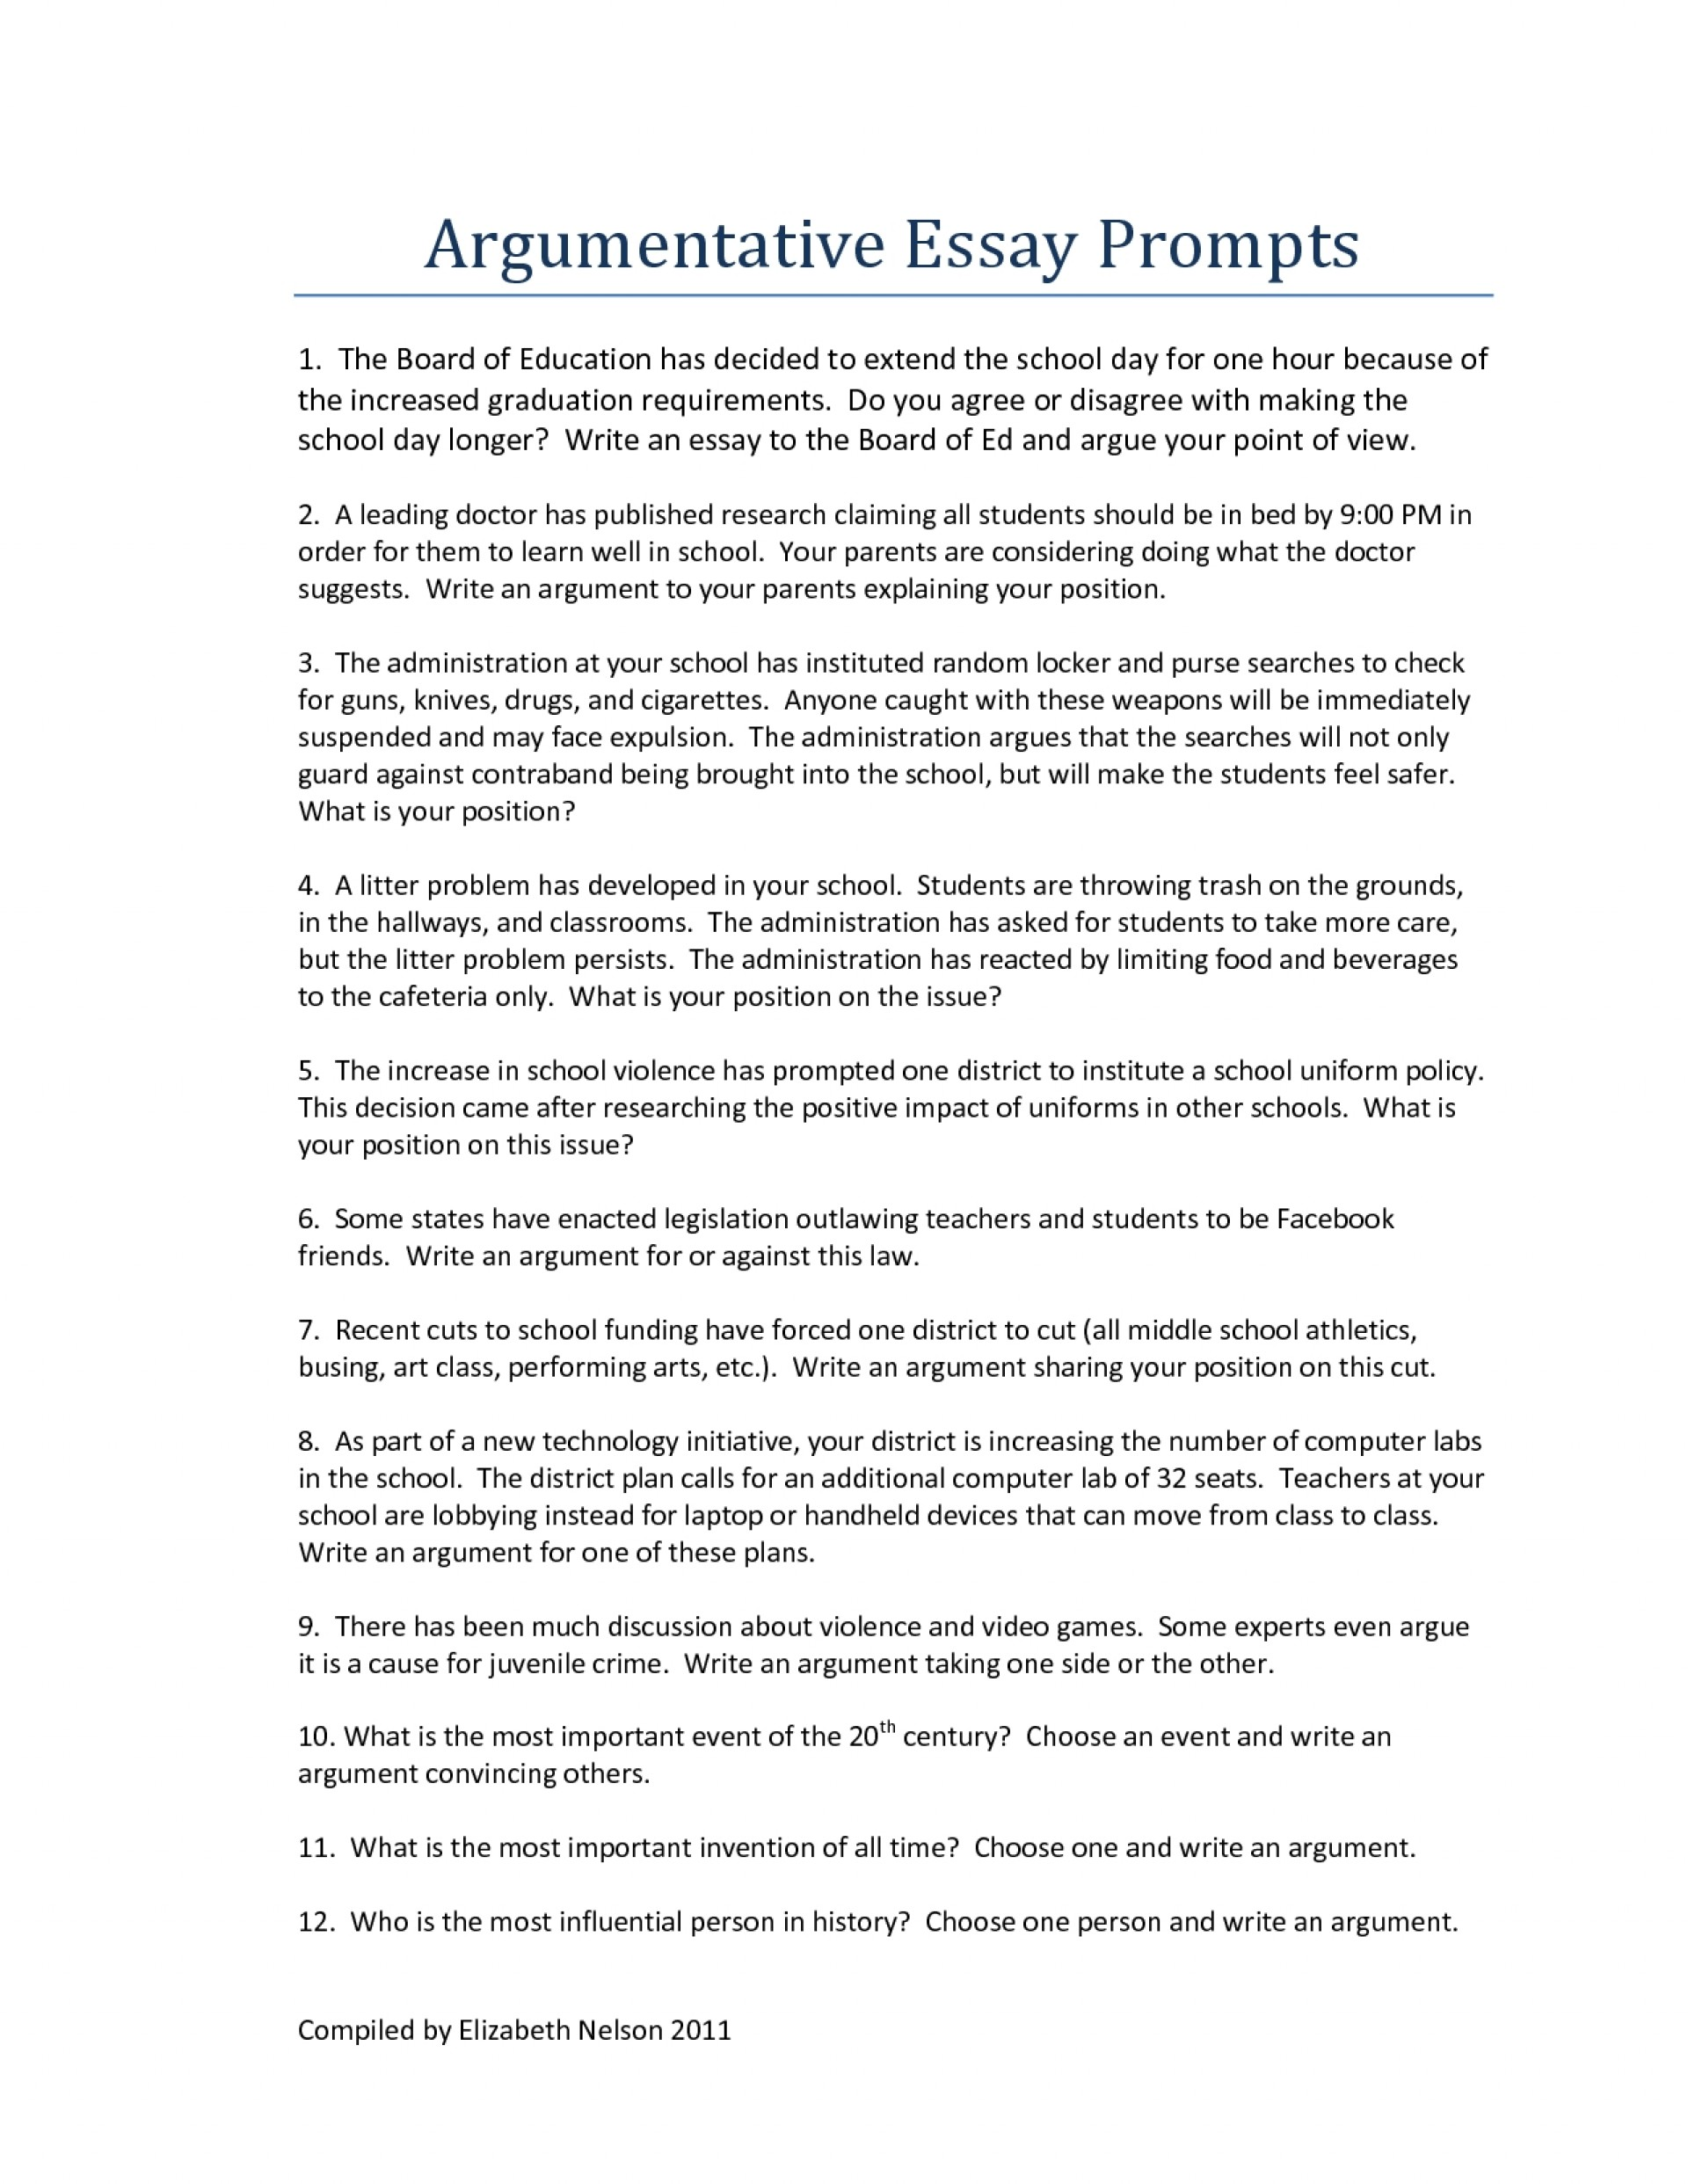 english argument essay topics the argumentative essay topics for  easy ideas for argumentative essay easy argumentative essay argumentative  essay topics for middle school writings and